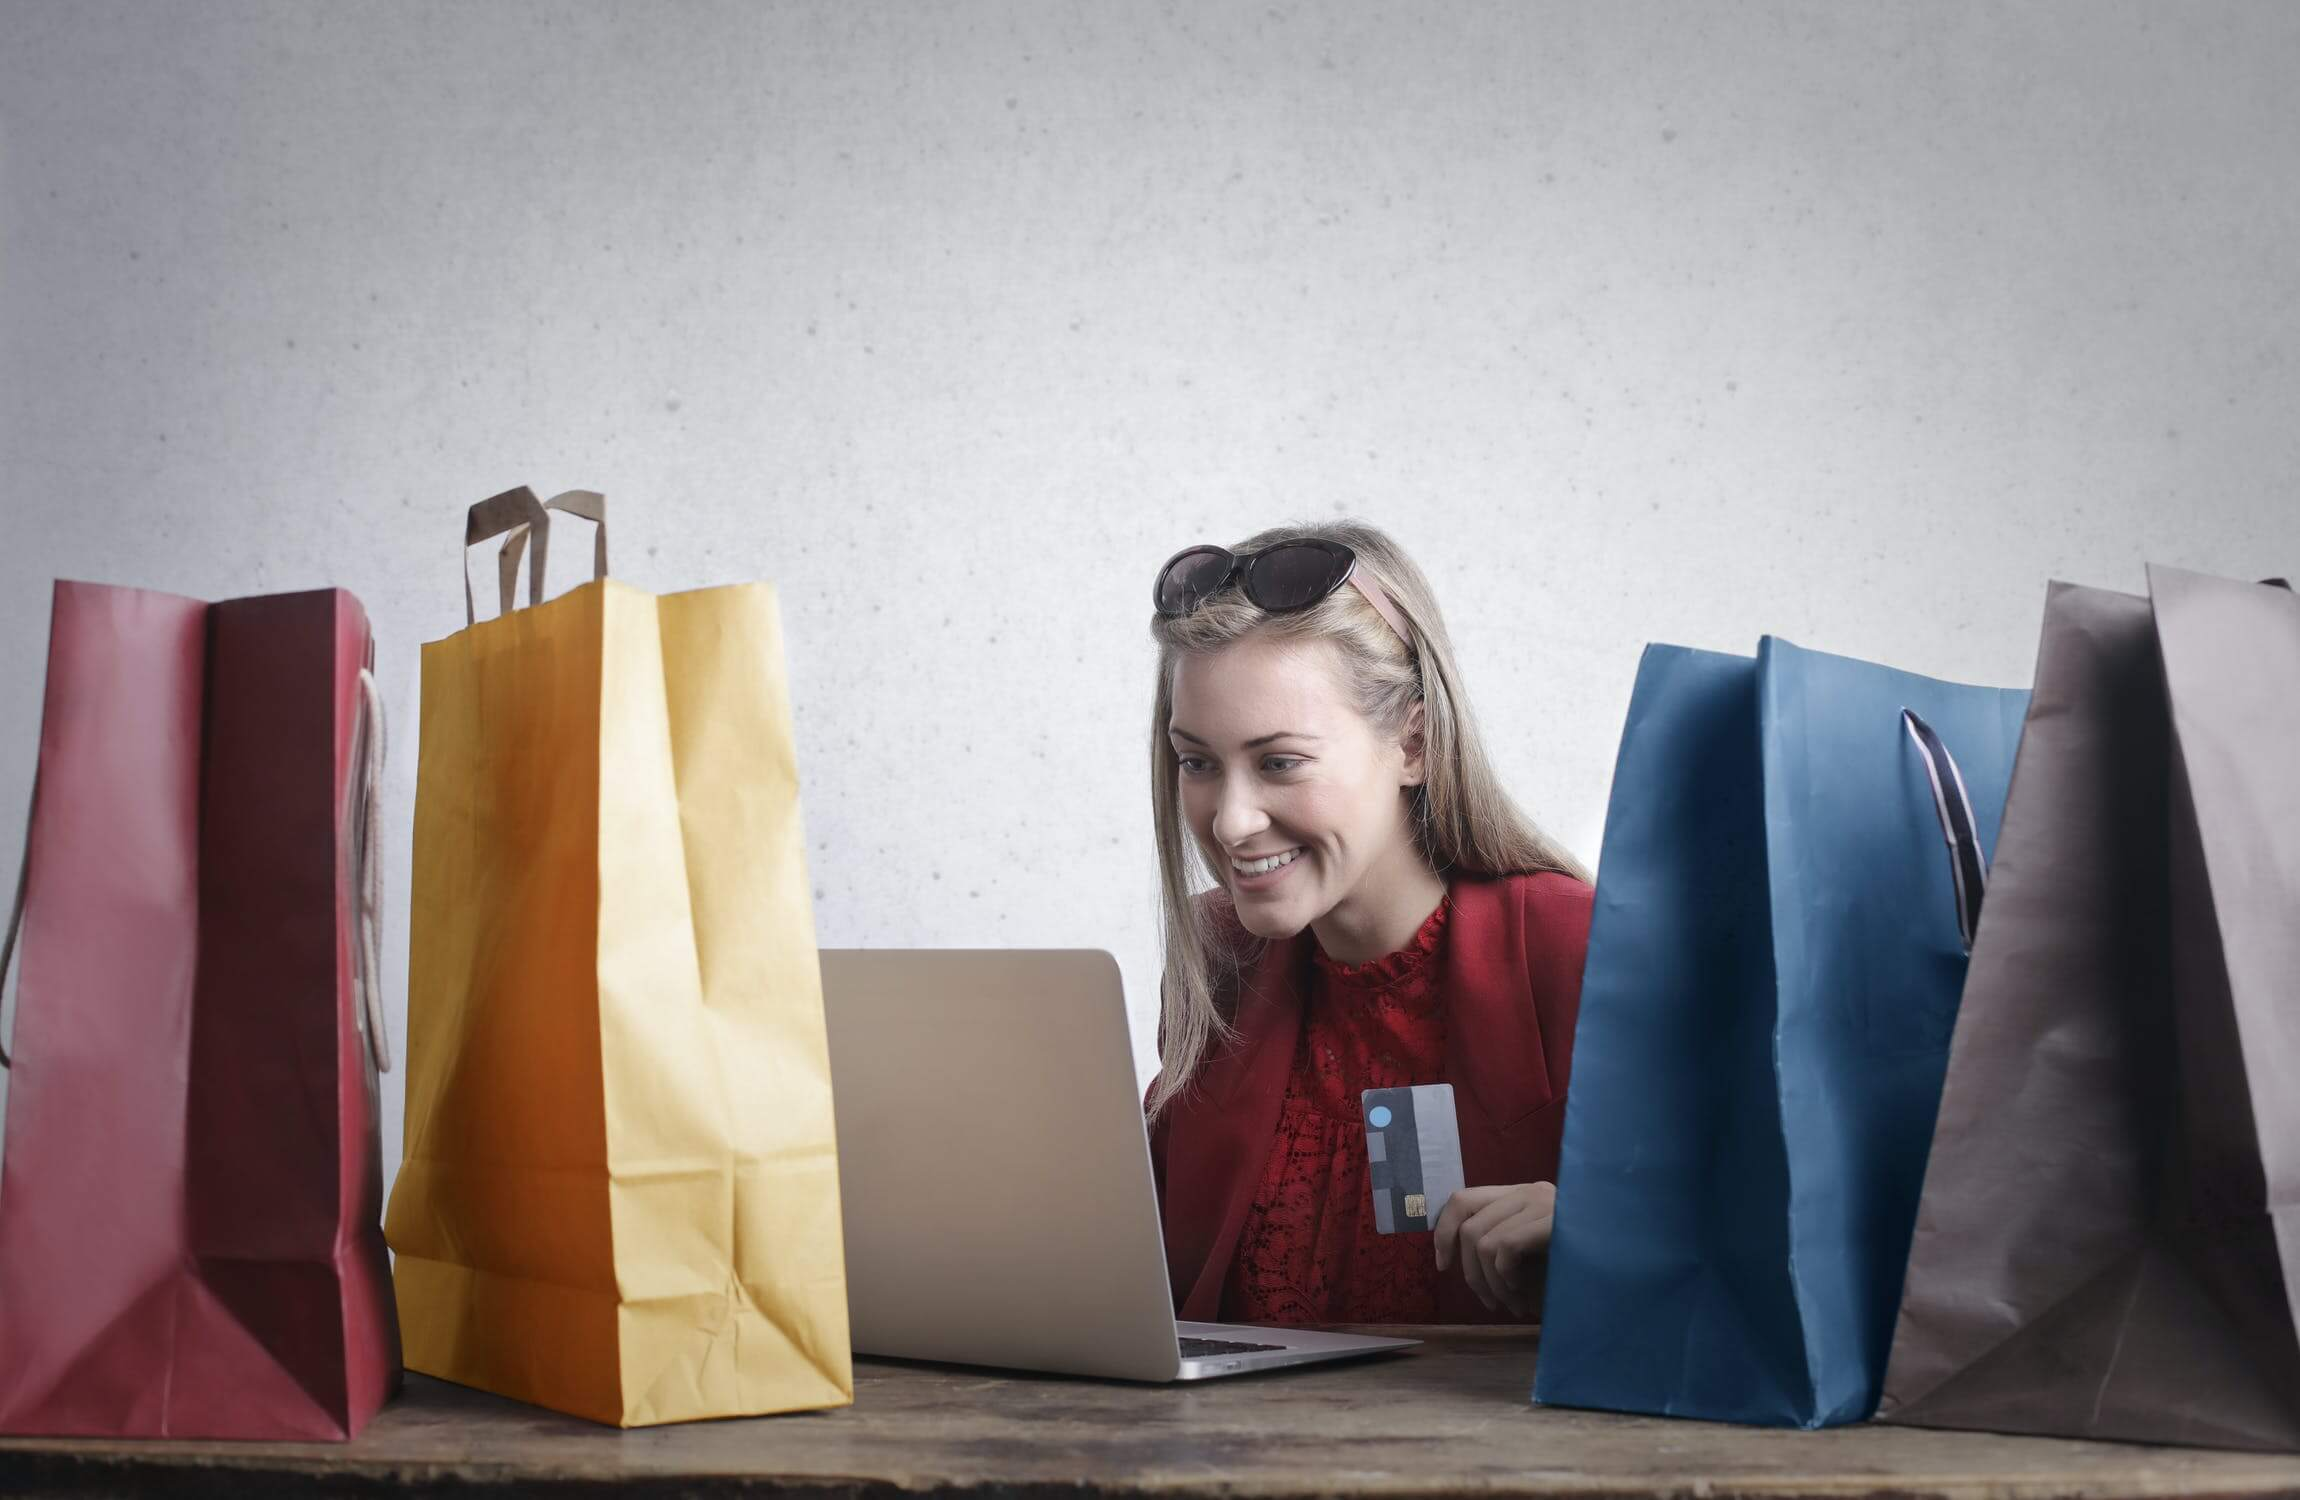 A woman surrounded by bags, holding a credit card, looking at a laptop